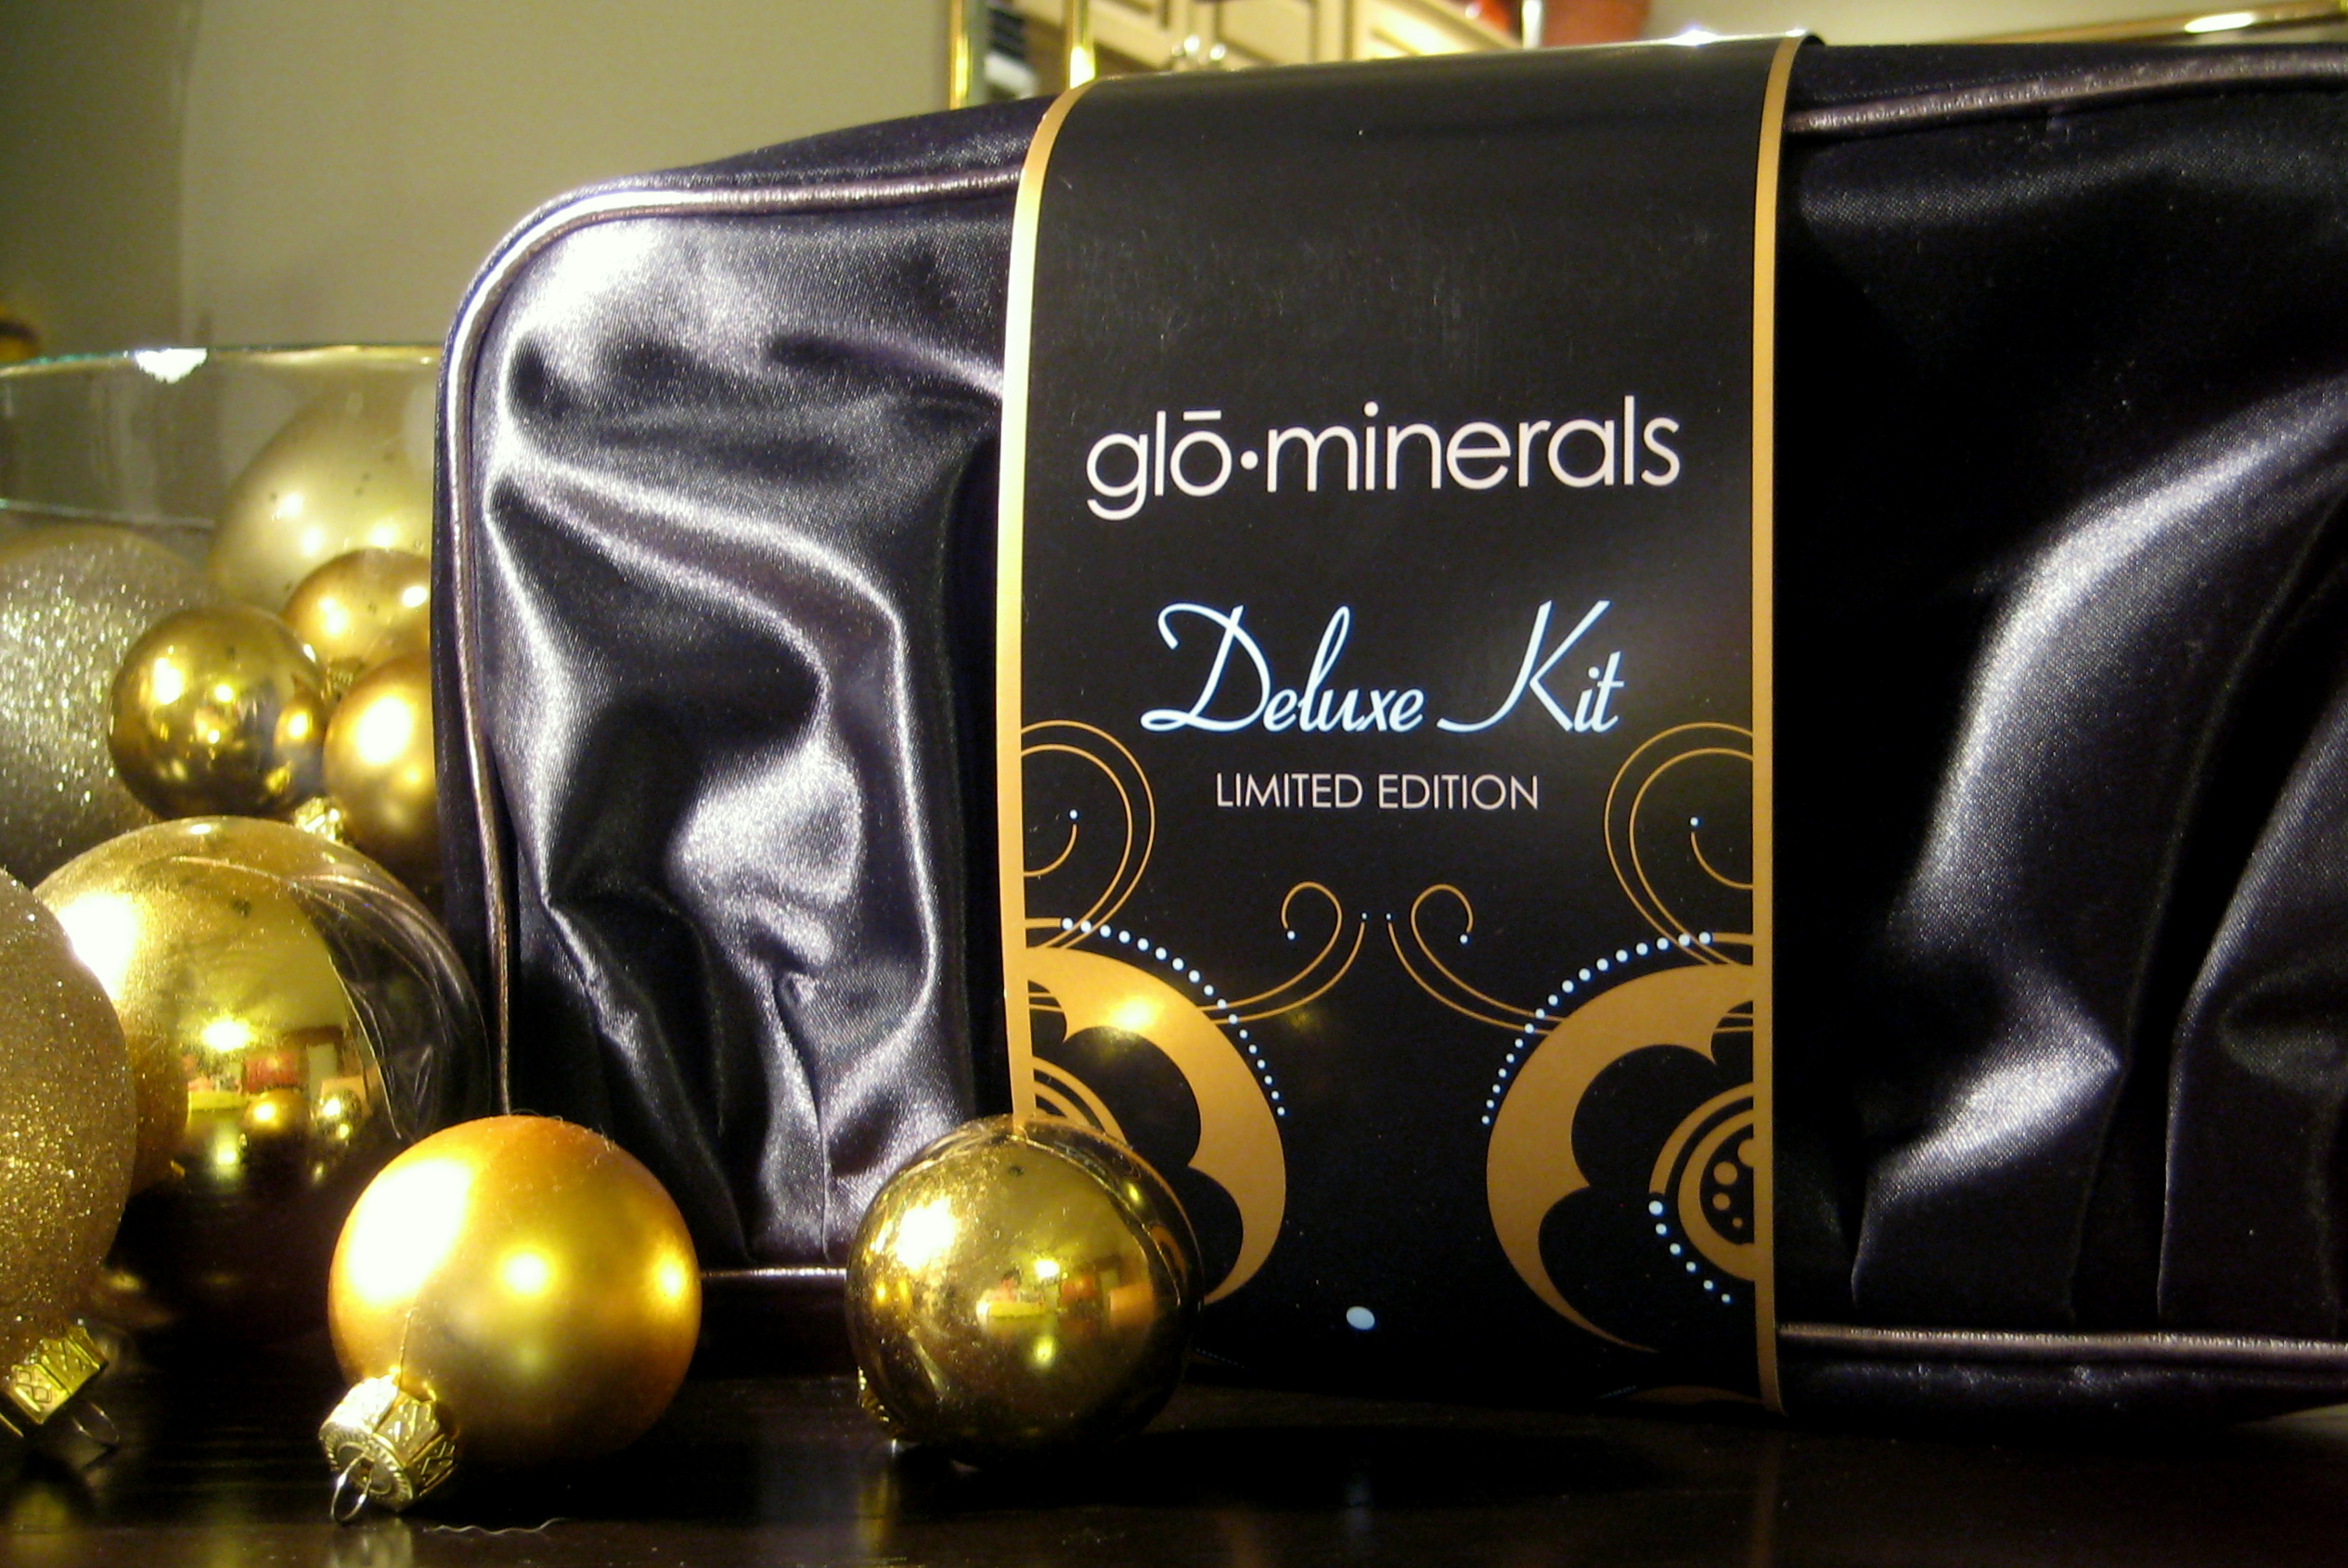 GloMinerals Deluxe Kit from iderma.com, Westlake Dermatology